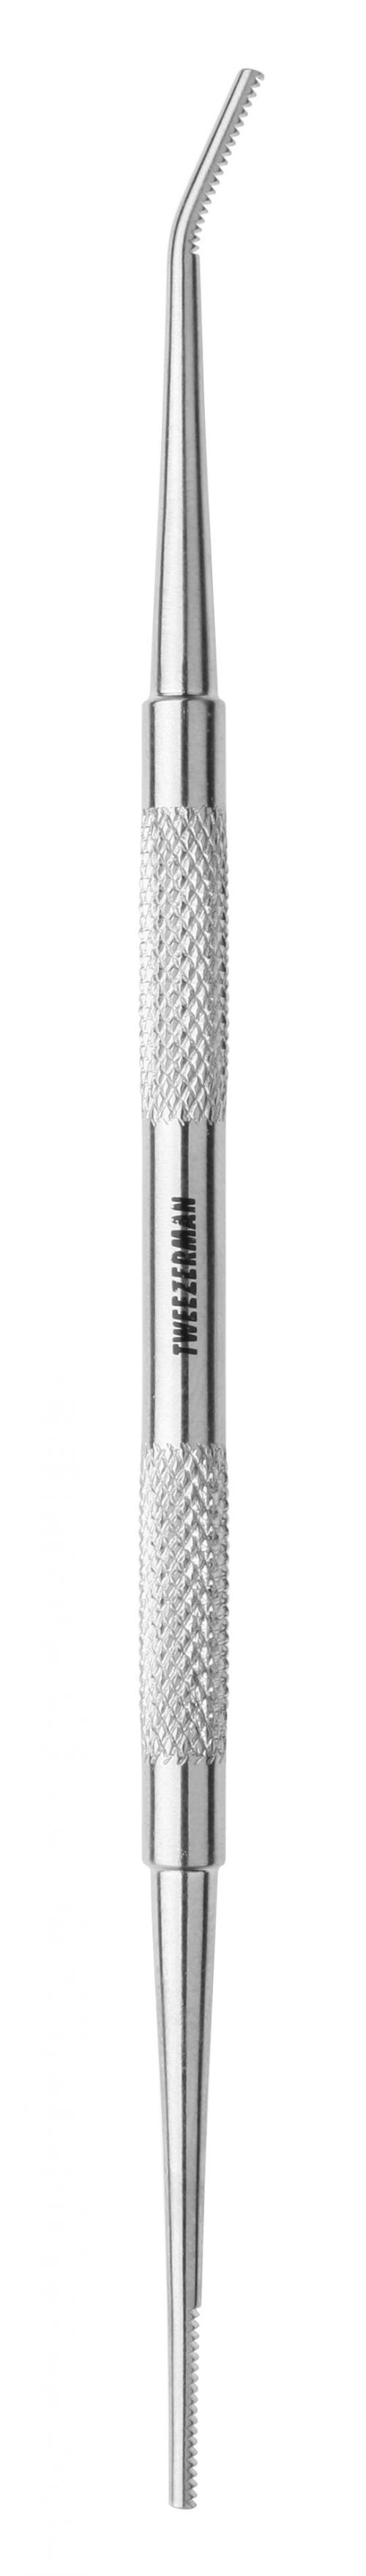 Tweezerman Ingrown Toenail File